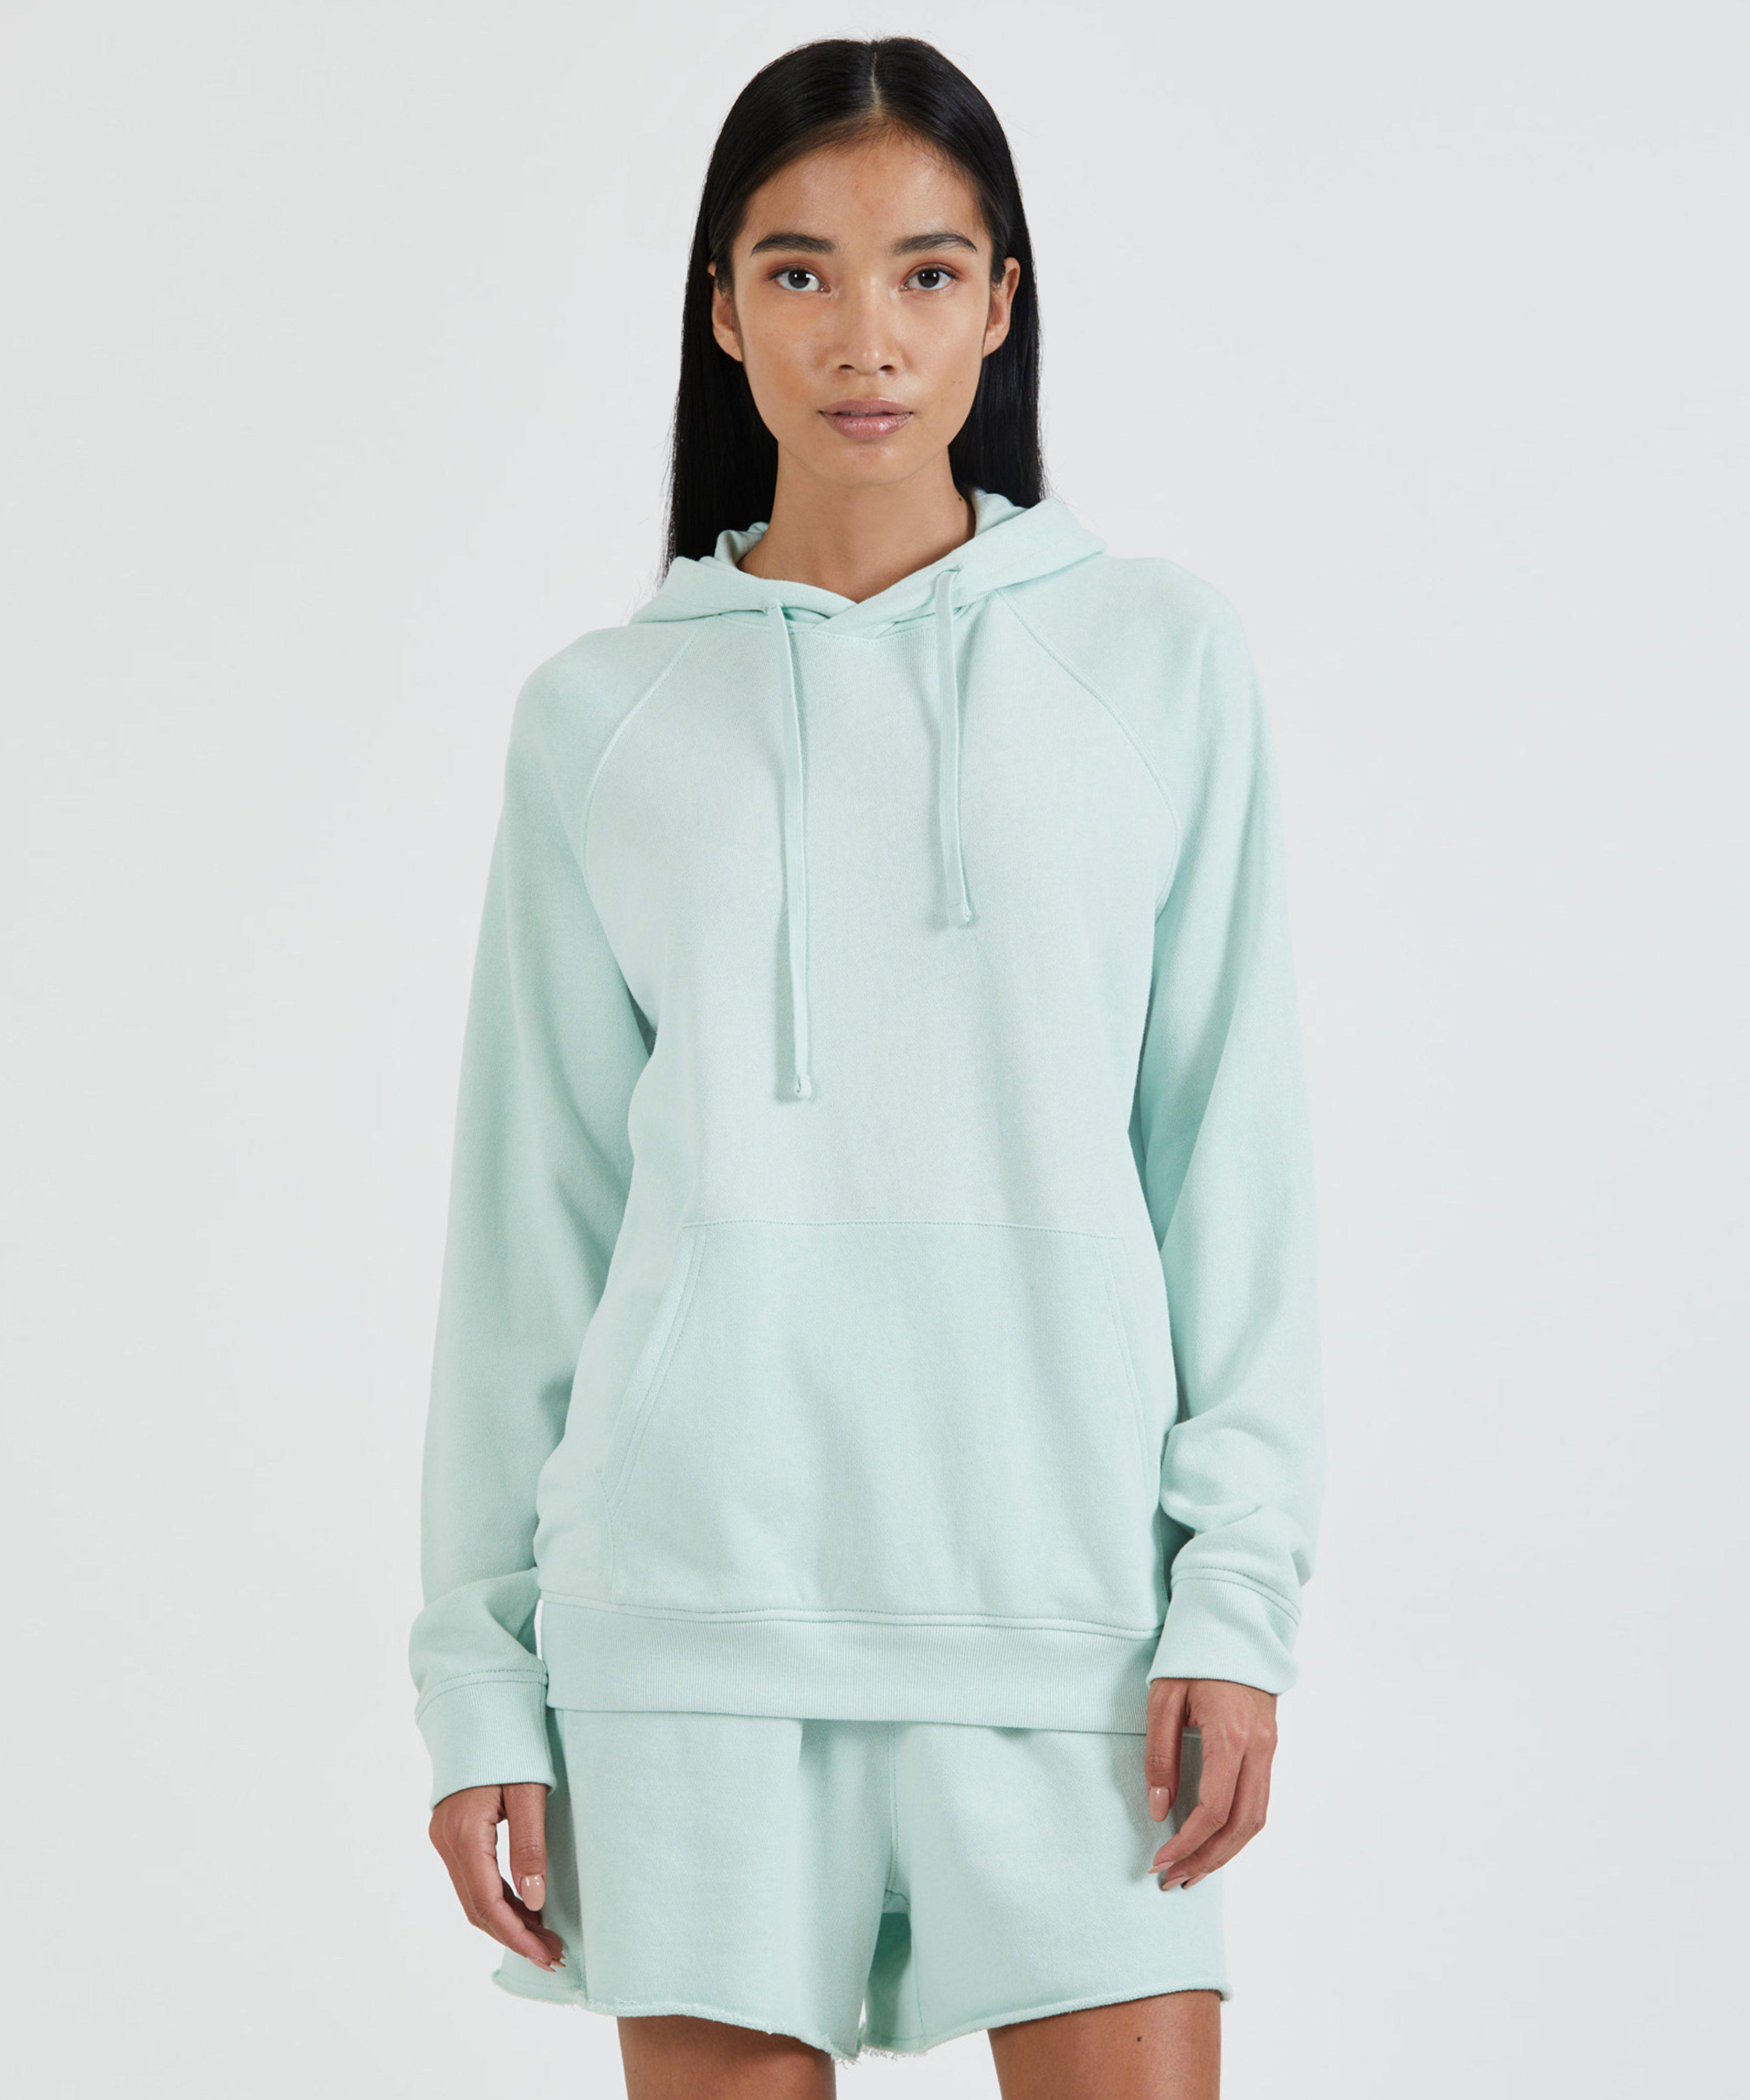 French Terry Pull-Over Hoodie - Mint